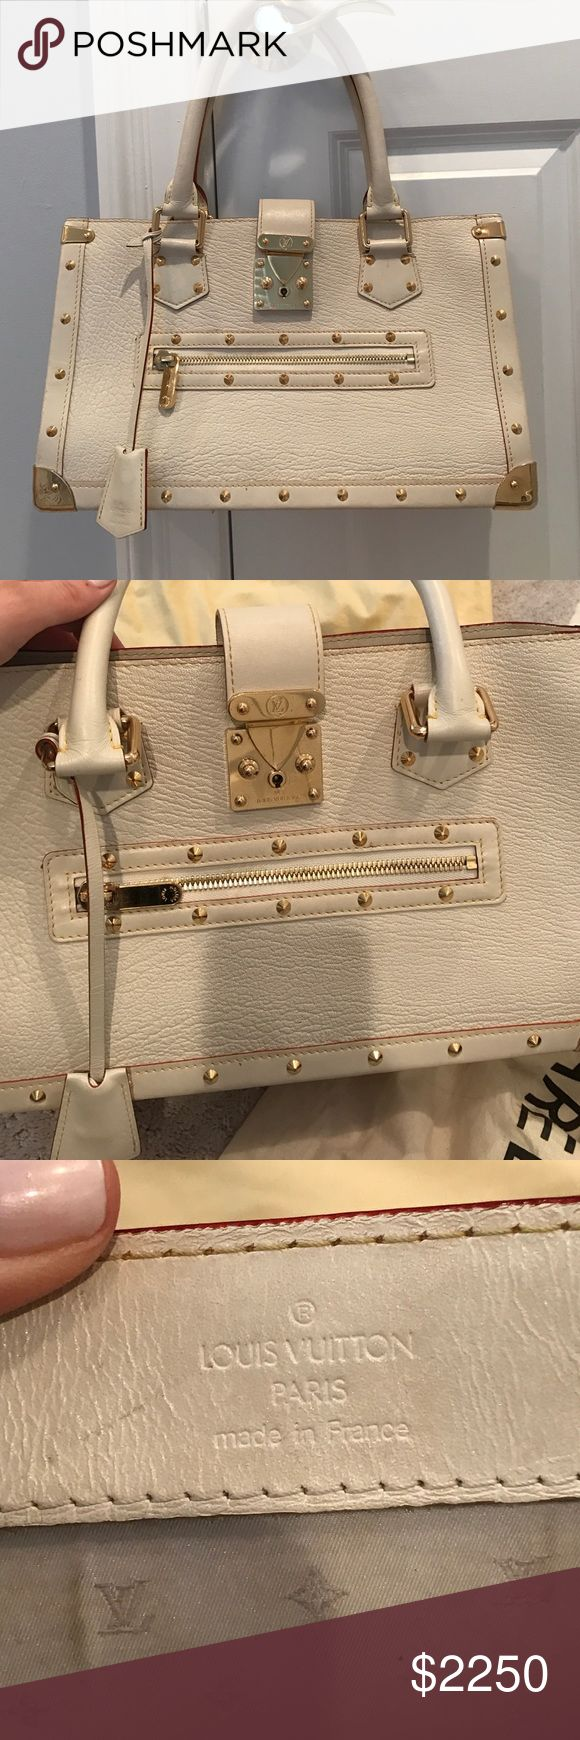 LOUIS VUITTON SUHALI 🌹 WHITE LOUIS VUITTON AUTHENTIC SUHALI WITH DUST BAG, BOX, AND SHOPPING BAG THIS BAG IS NO LONGER IN PRODUCTION - worn by celebrities such as Jessica Simpson - Caroline Manzo - Kim Kardashian - Carmine Electra ** smoke free pet free Louis Vuitton Bags Shoulder Bags